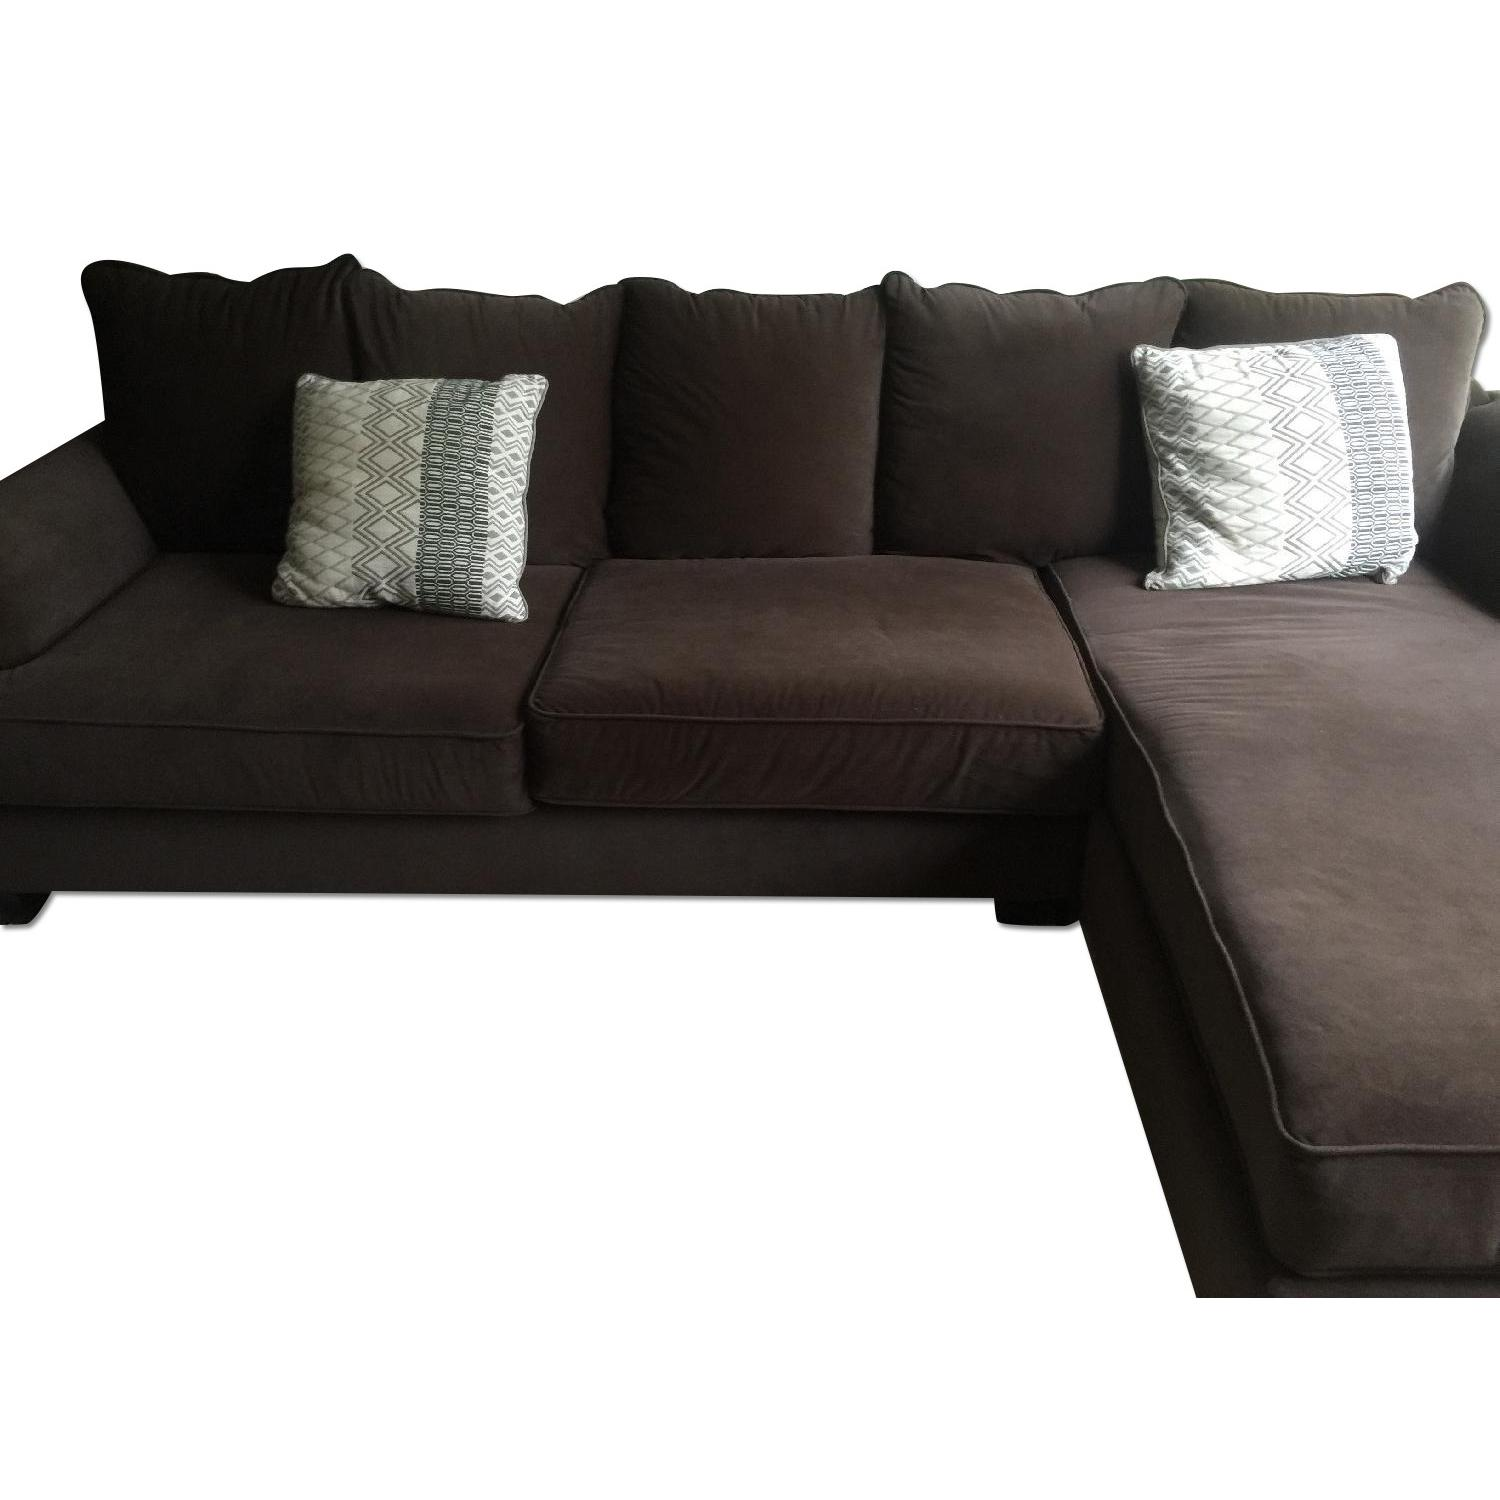 Lovely Sectional Couches Bobs Home Decor Sectional Sofas Bobs